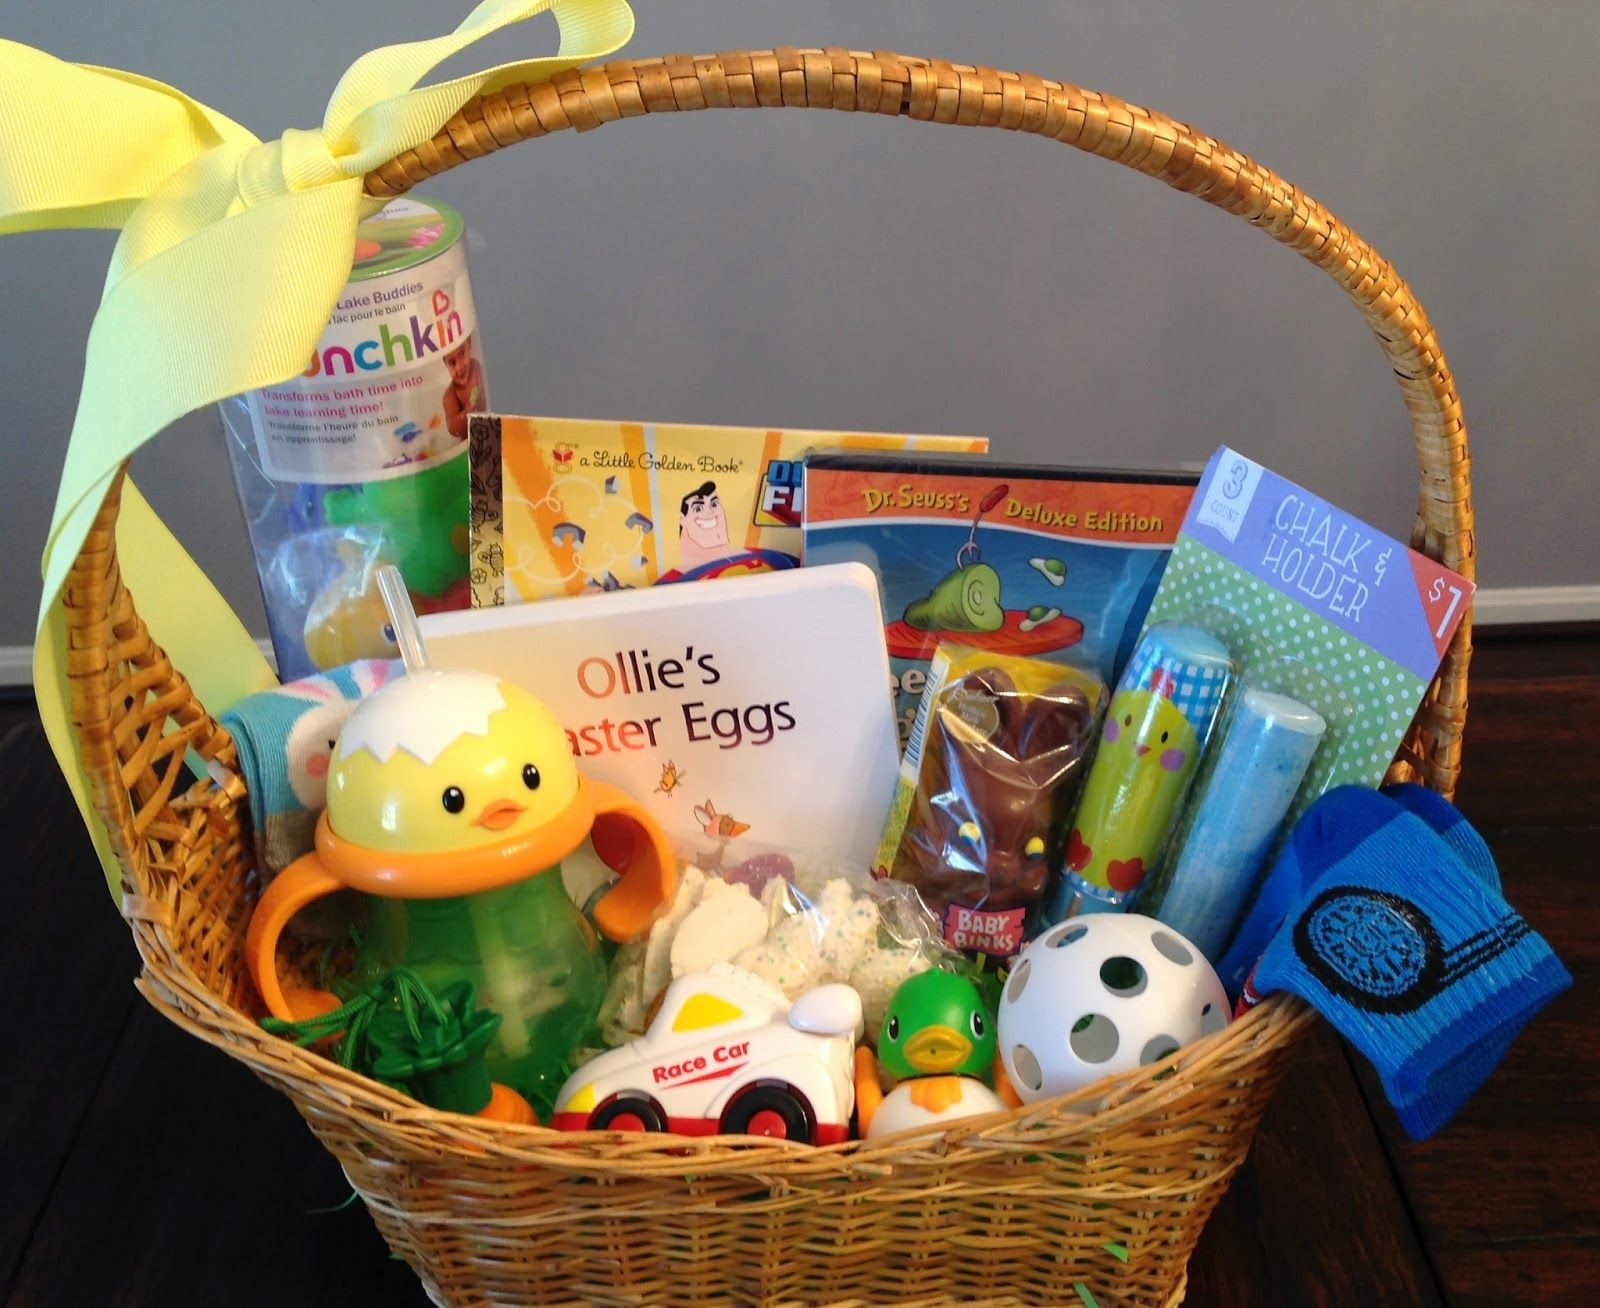 Bed rested teacher 95 easter basket ideas for babies and toddlers bed rested teacher 95 easter basket ideas for babies and toddlers negle Choice Image